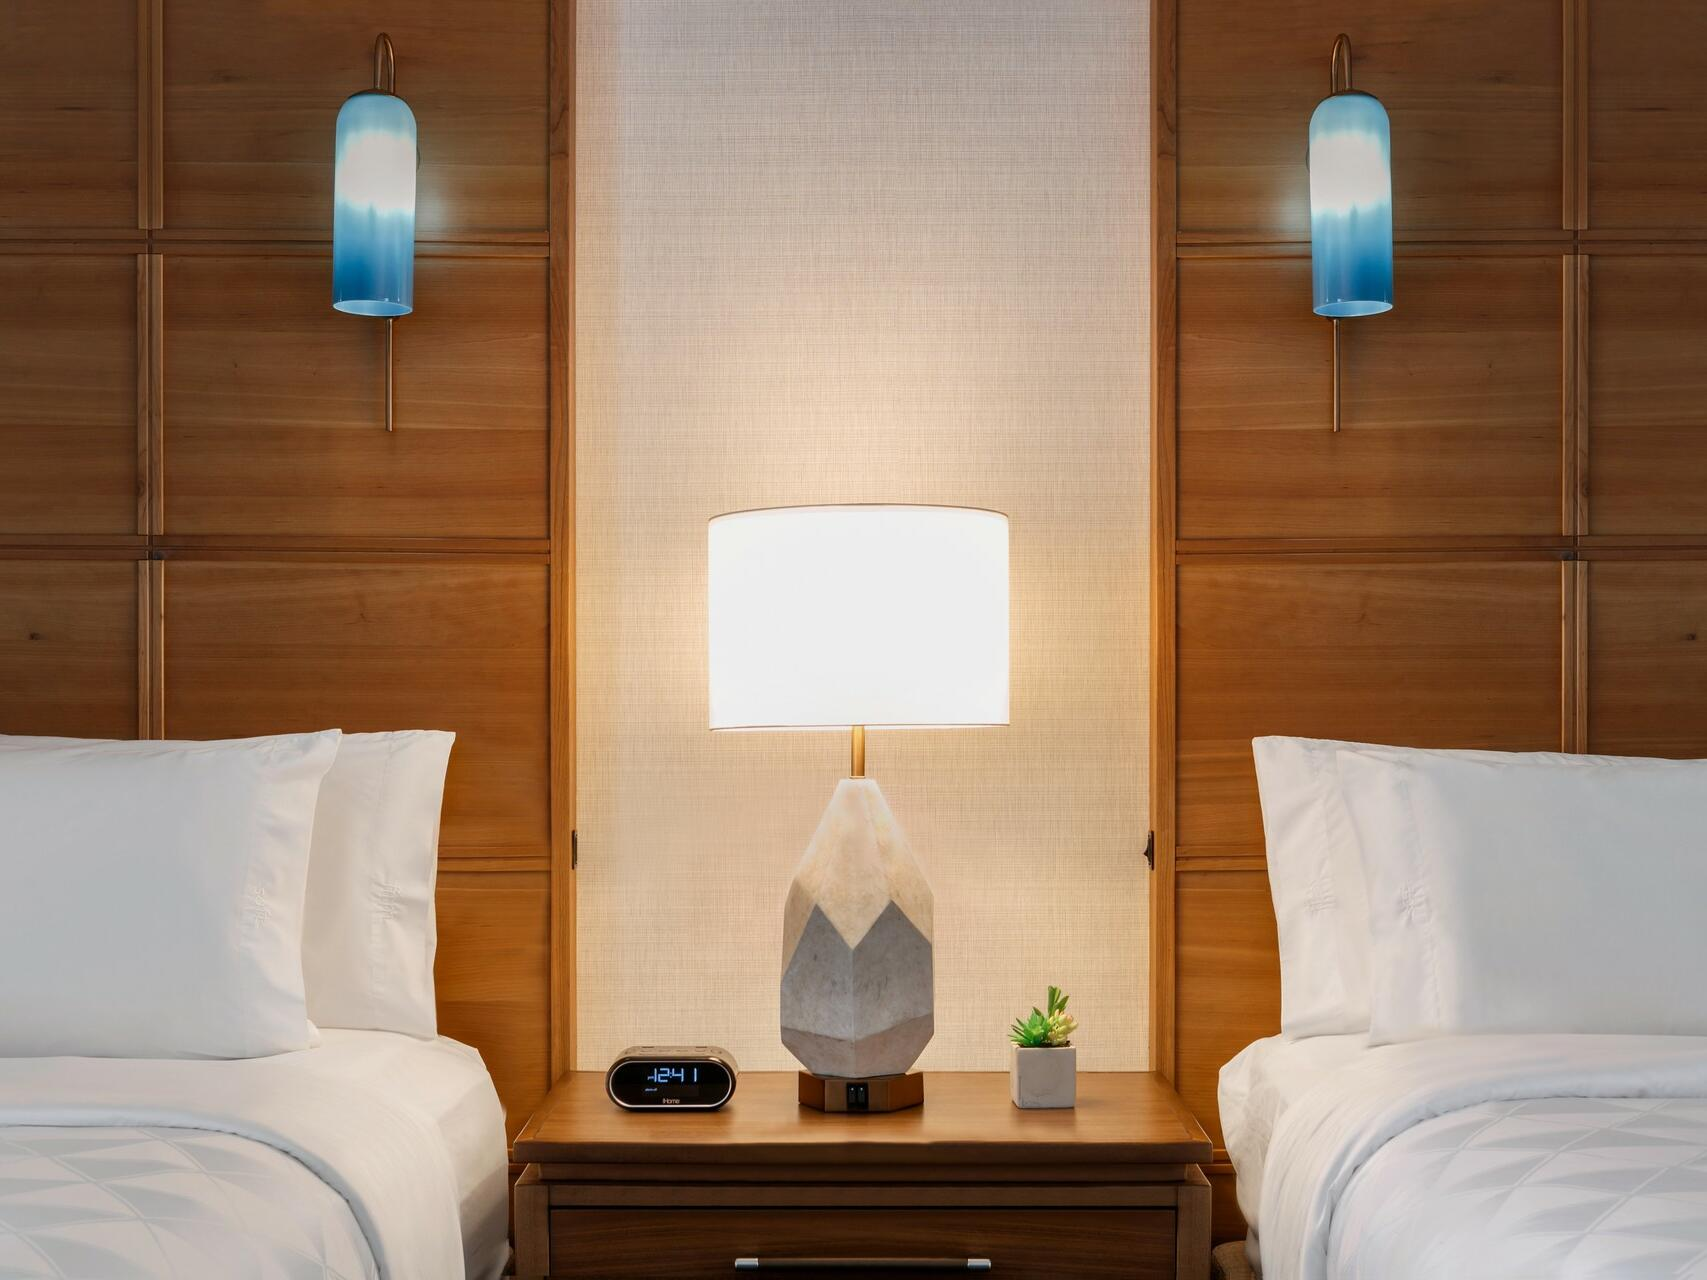 Table Lamp & Two beds at Oceanfront Suite in Holiday Inn Hotel